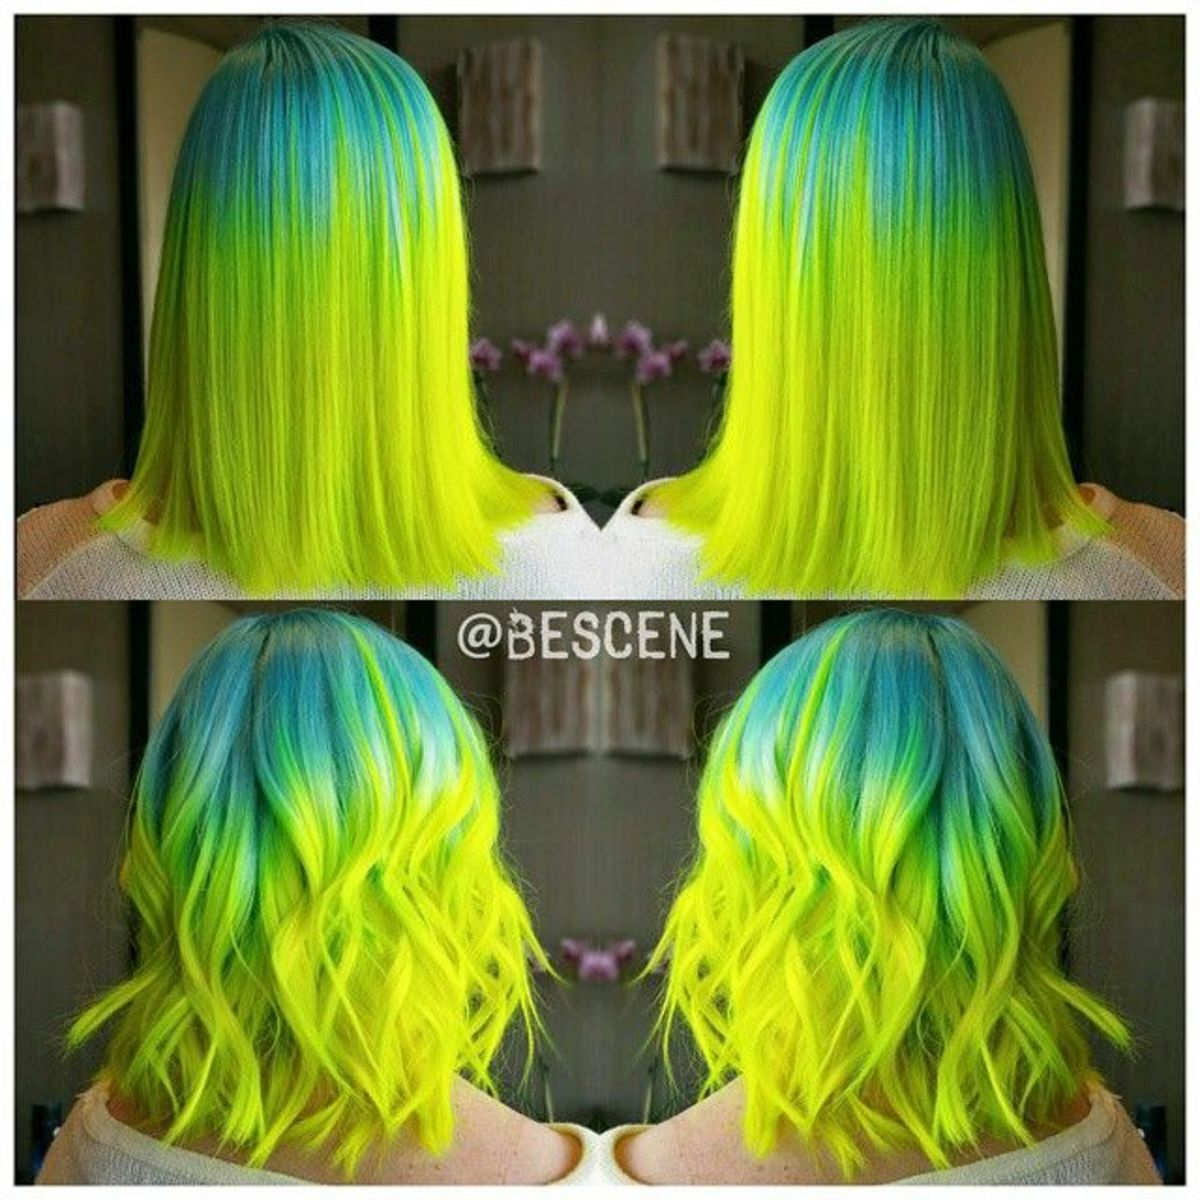 10 Neon Hair Color Ideas and What Products to Use